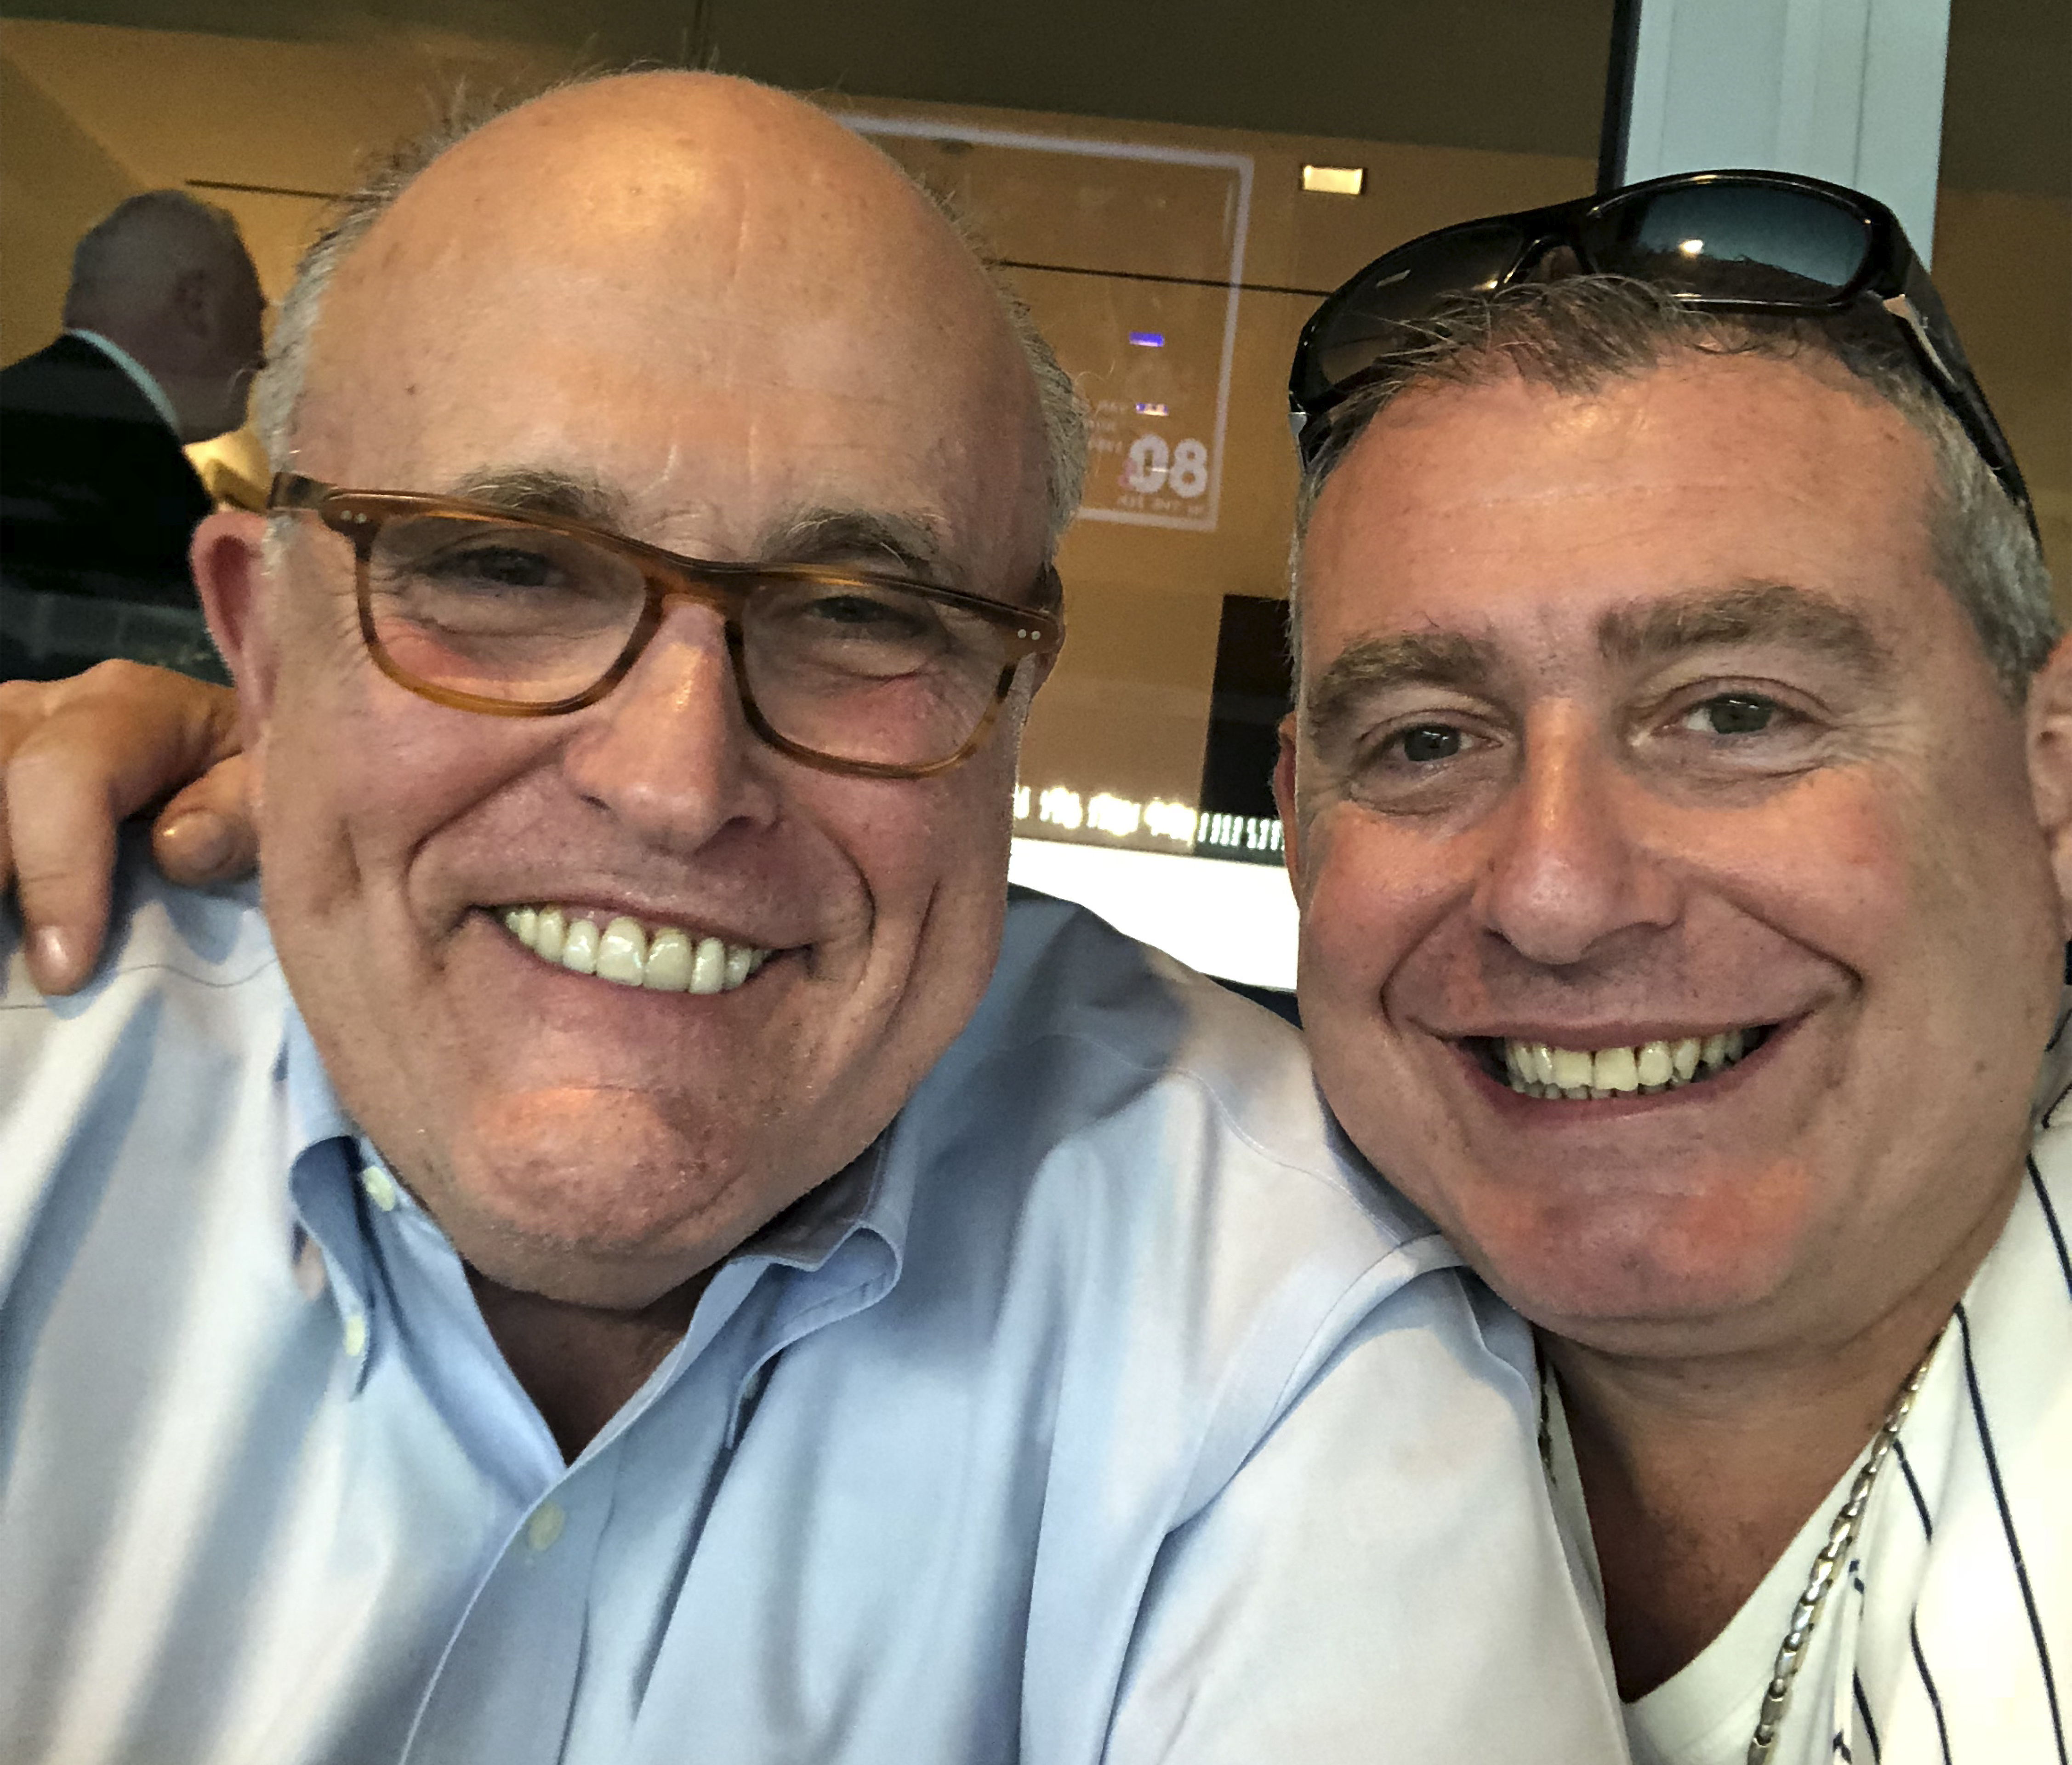 This undated image released by the House Judiciary Committee from documents provided by Lev Parnas to the committee in the impeachment probe against President Donald Trump, shows a photo of Lev Parnas with Rudy Giuliani.